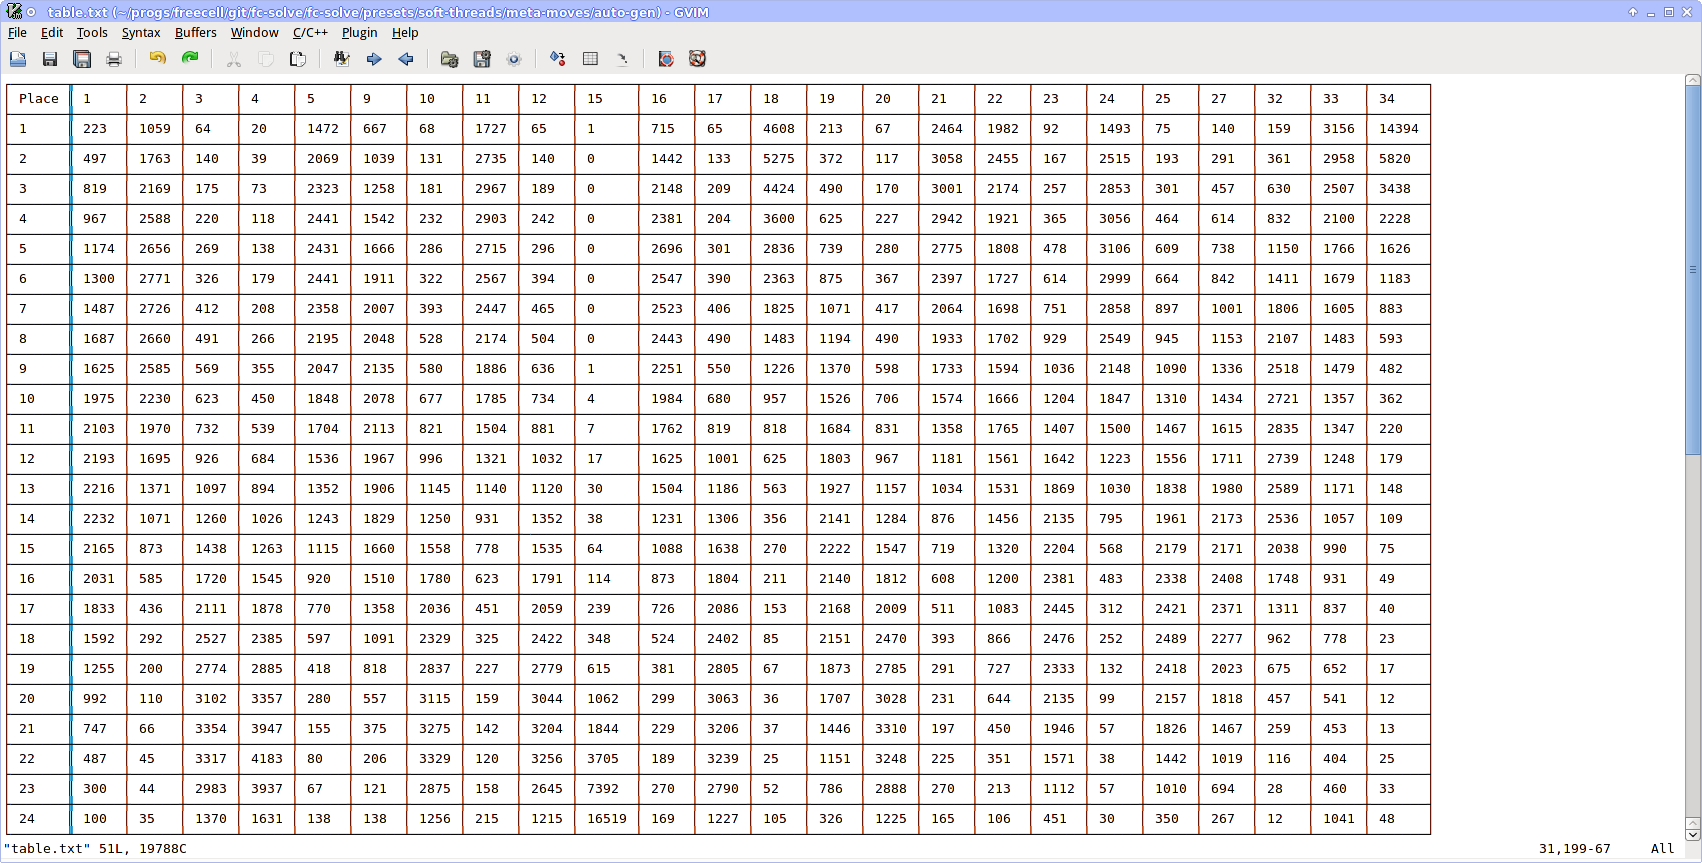 Worksheets Table From 11 To 20 table from 11 to 20 rupsucks printables worksheets index of filesfilesimages 128k lines vim in konsole png